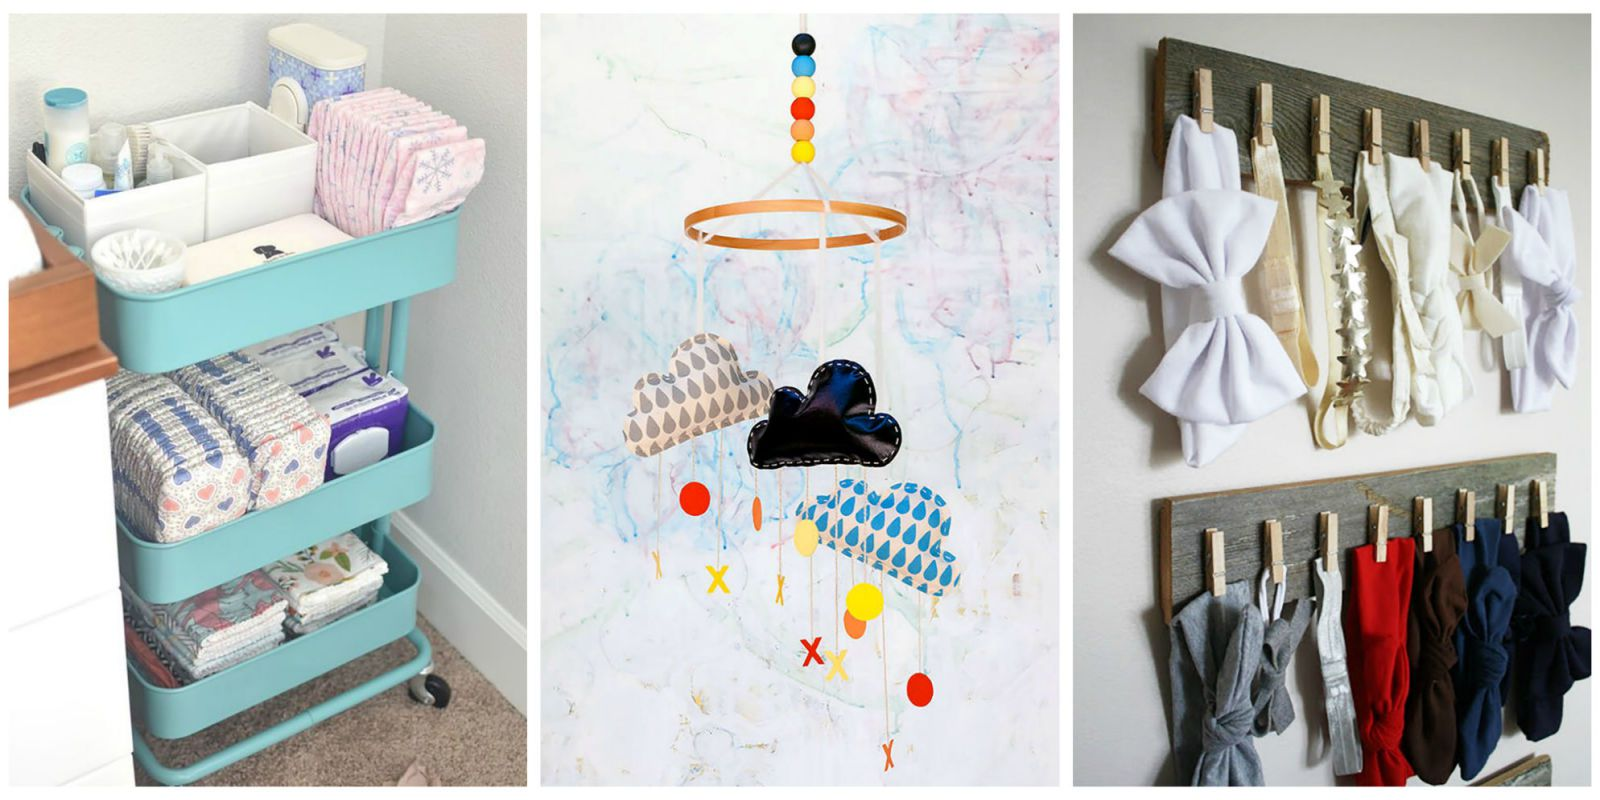 20 Best Baby Room Decor Ideas - Nursery Design, Organization, and